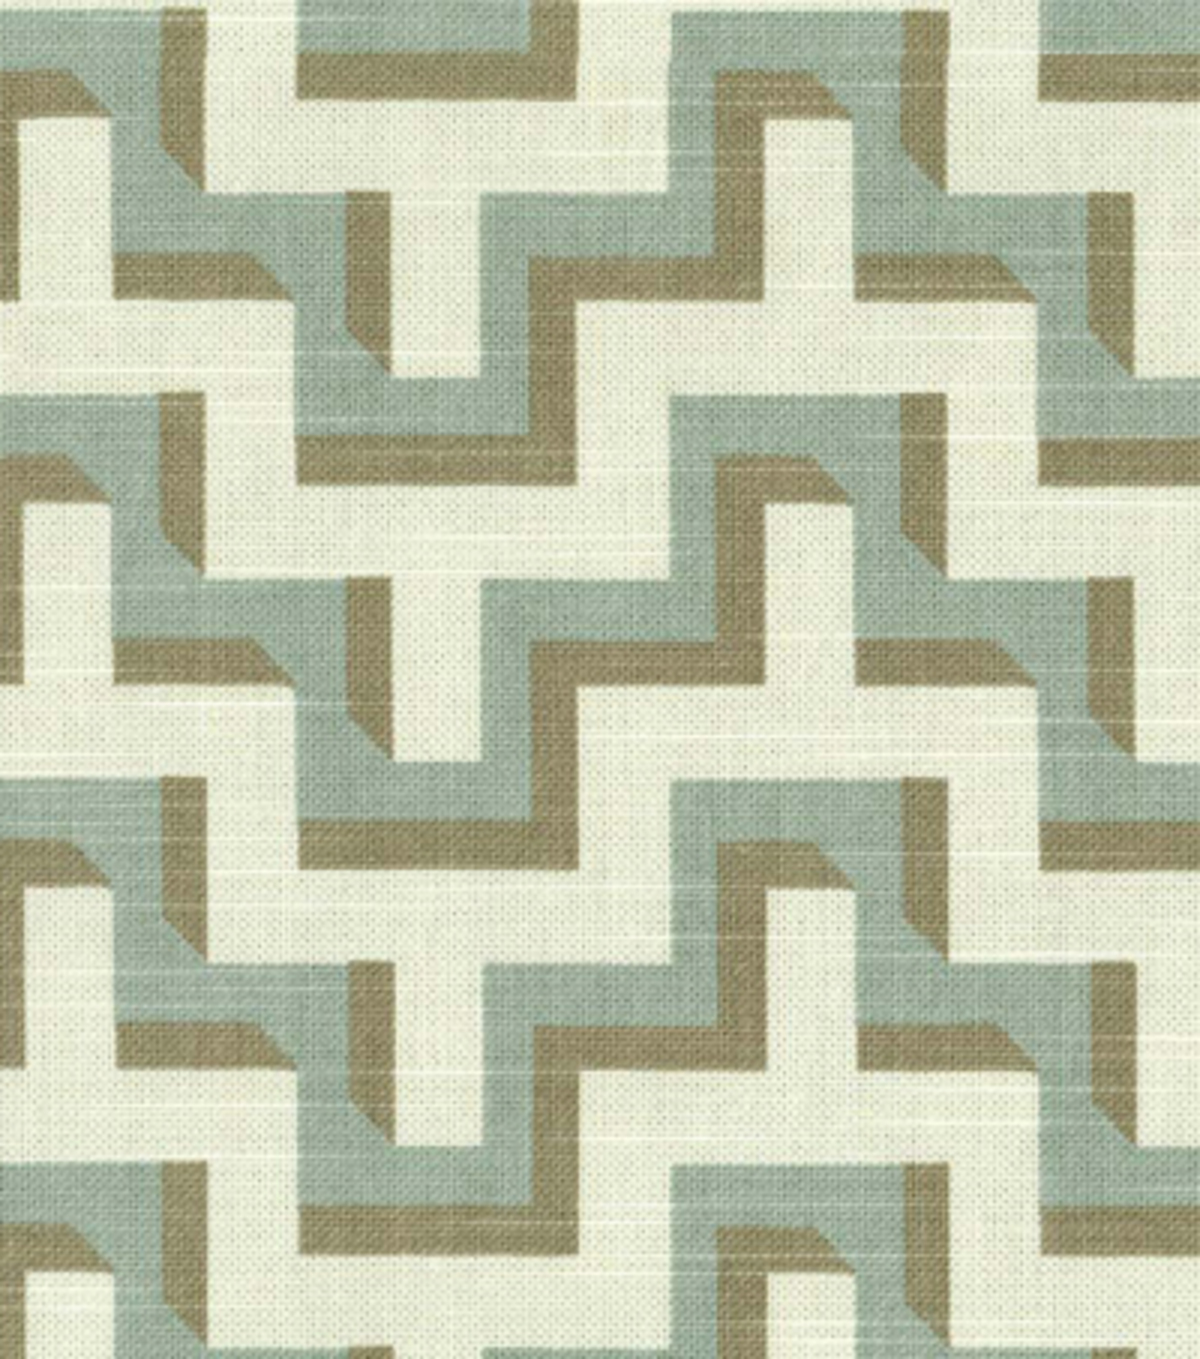 Home Decor 8''x 8''Swatch Print Fabric- HGTV HOME Jigsaw